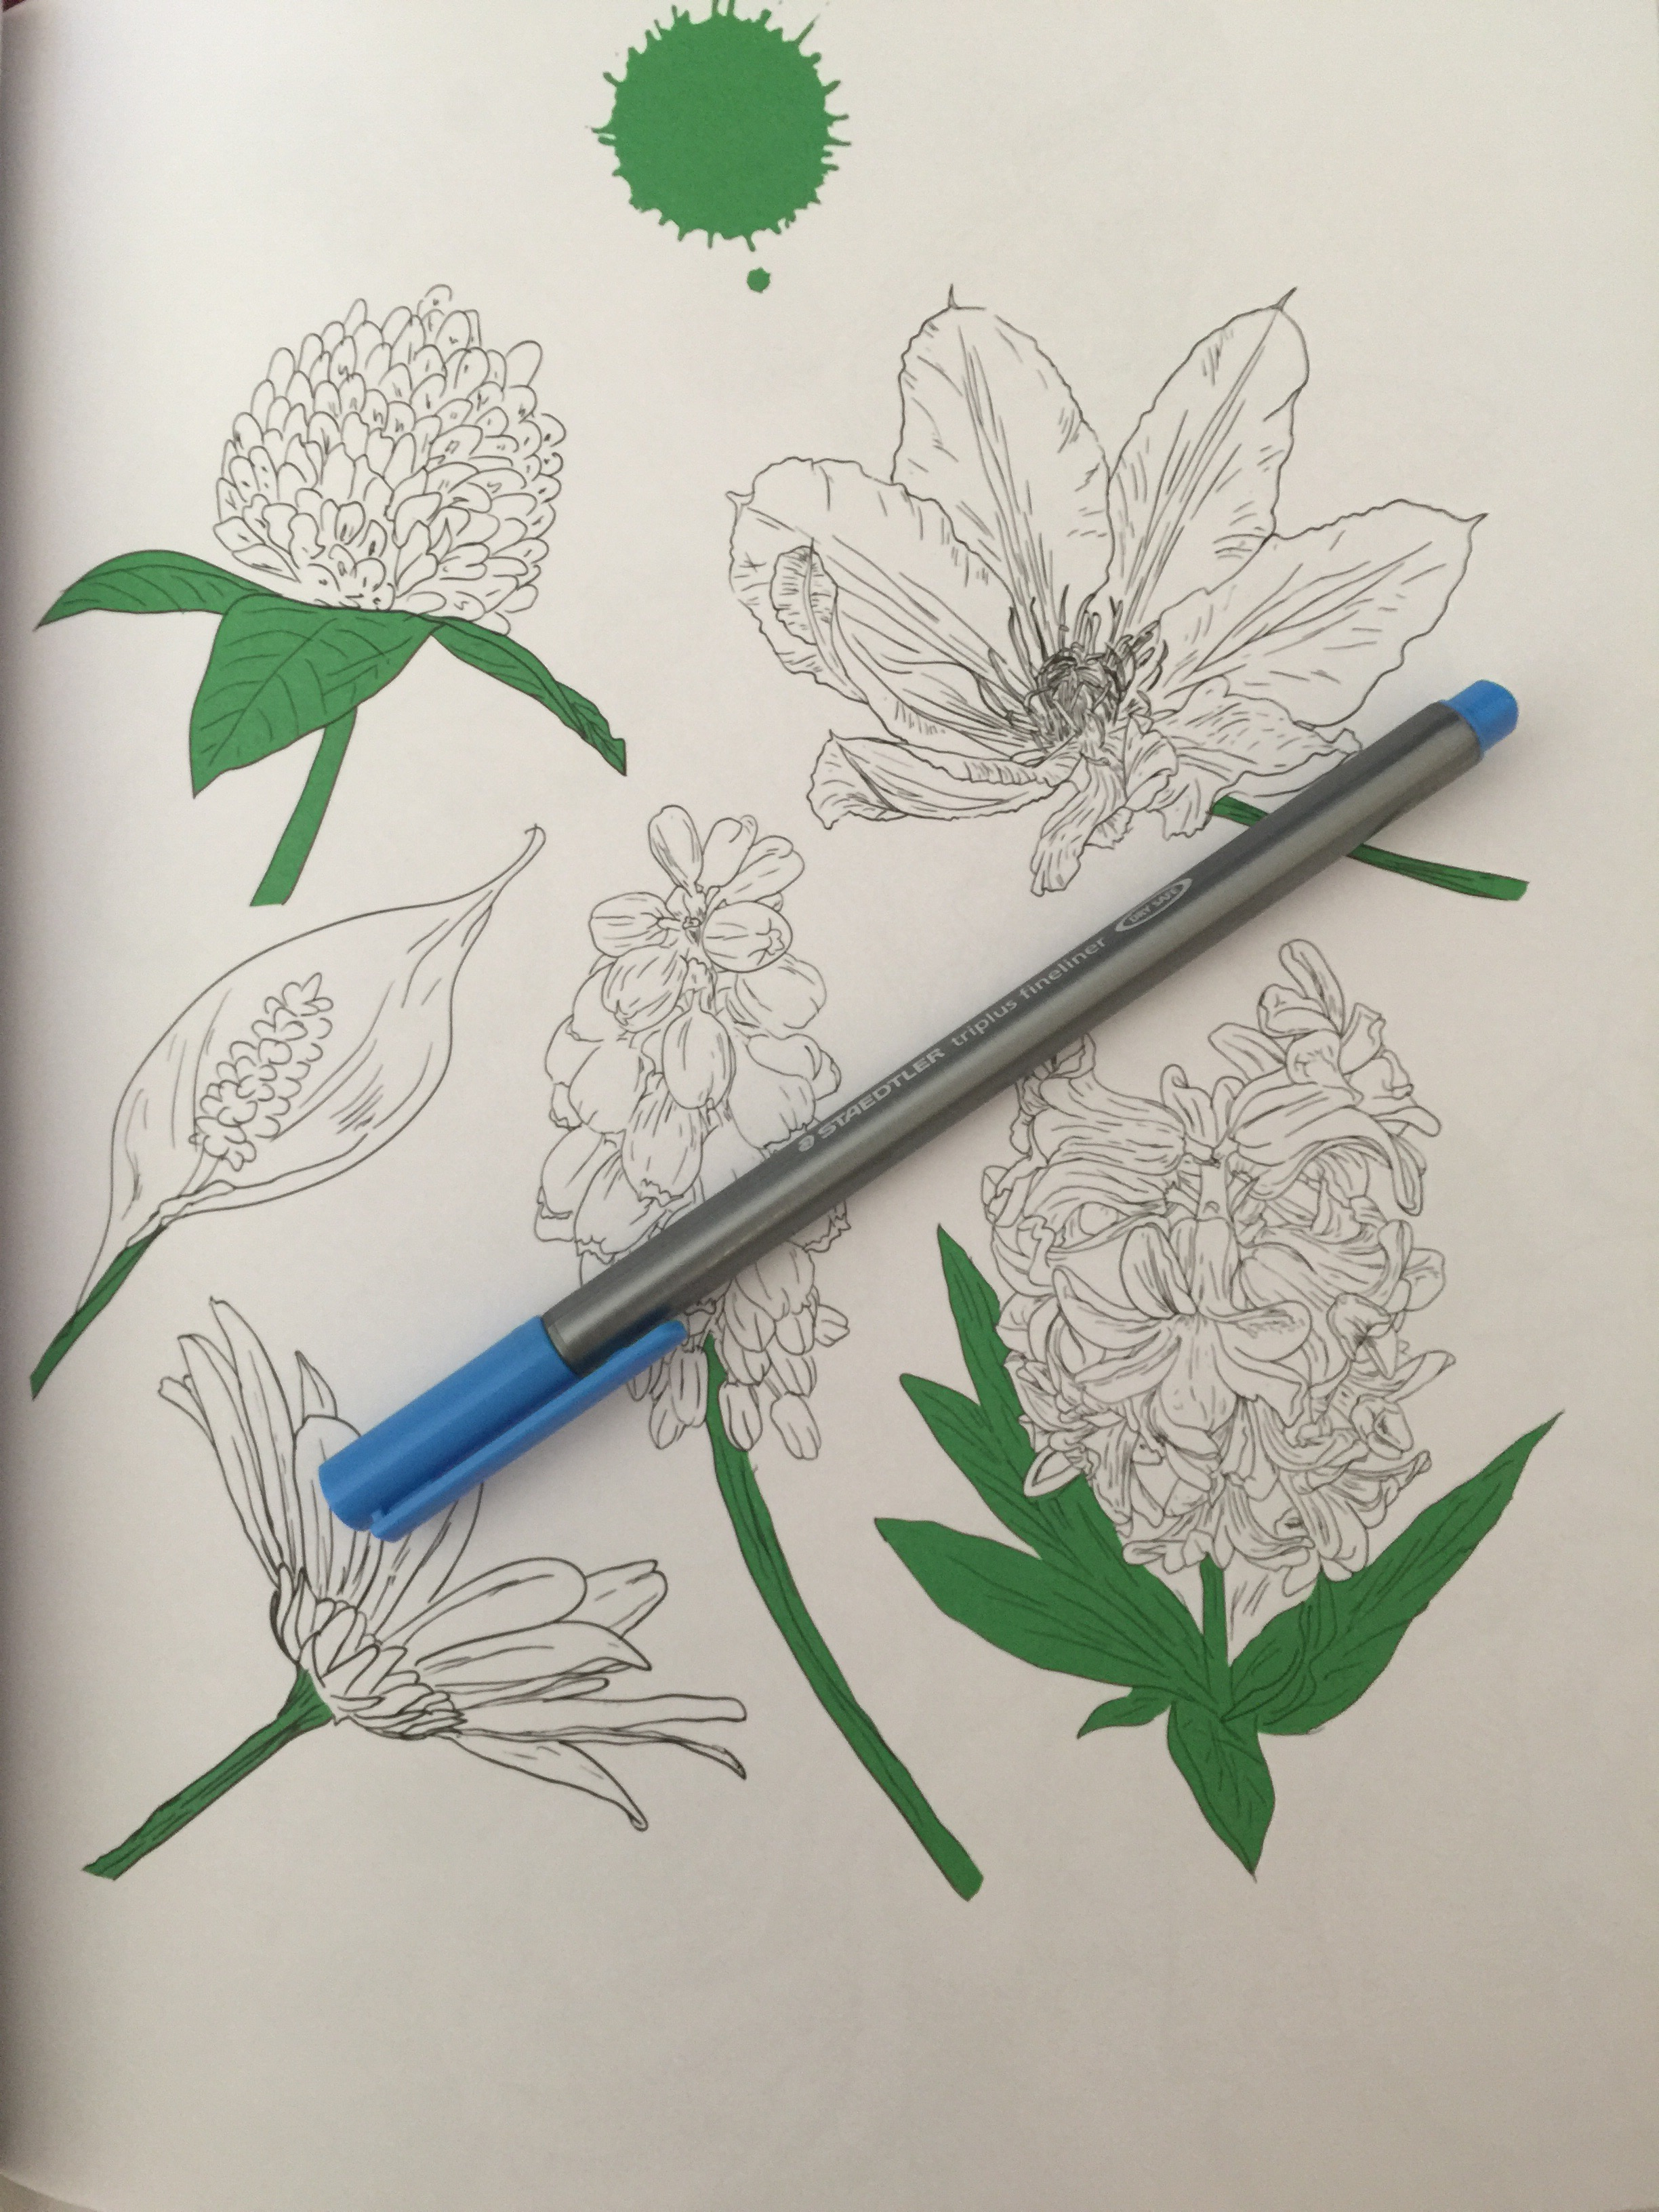 adult coloring colouring book review pencils pens markers stress relief reviews art therapy